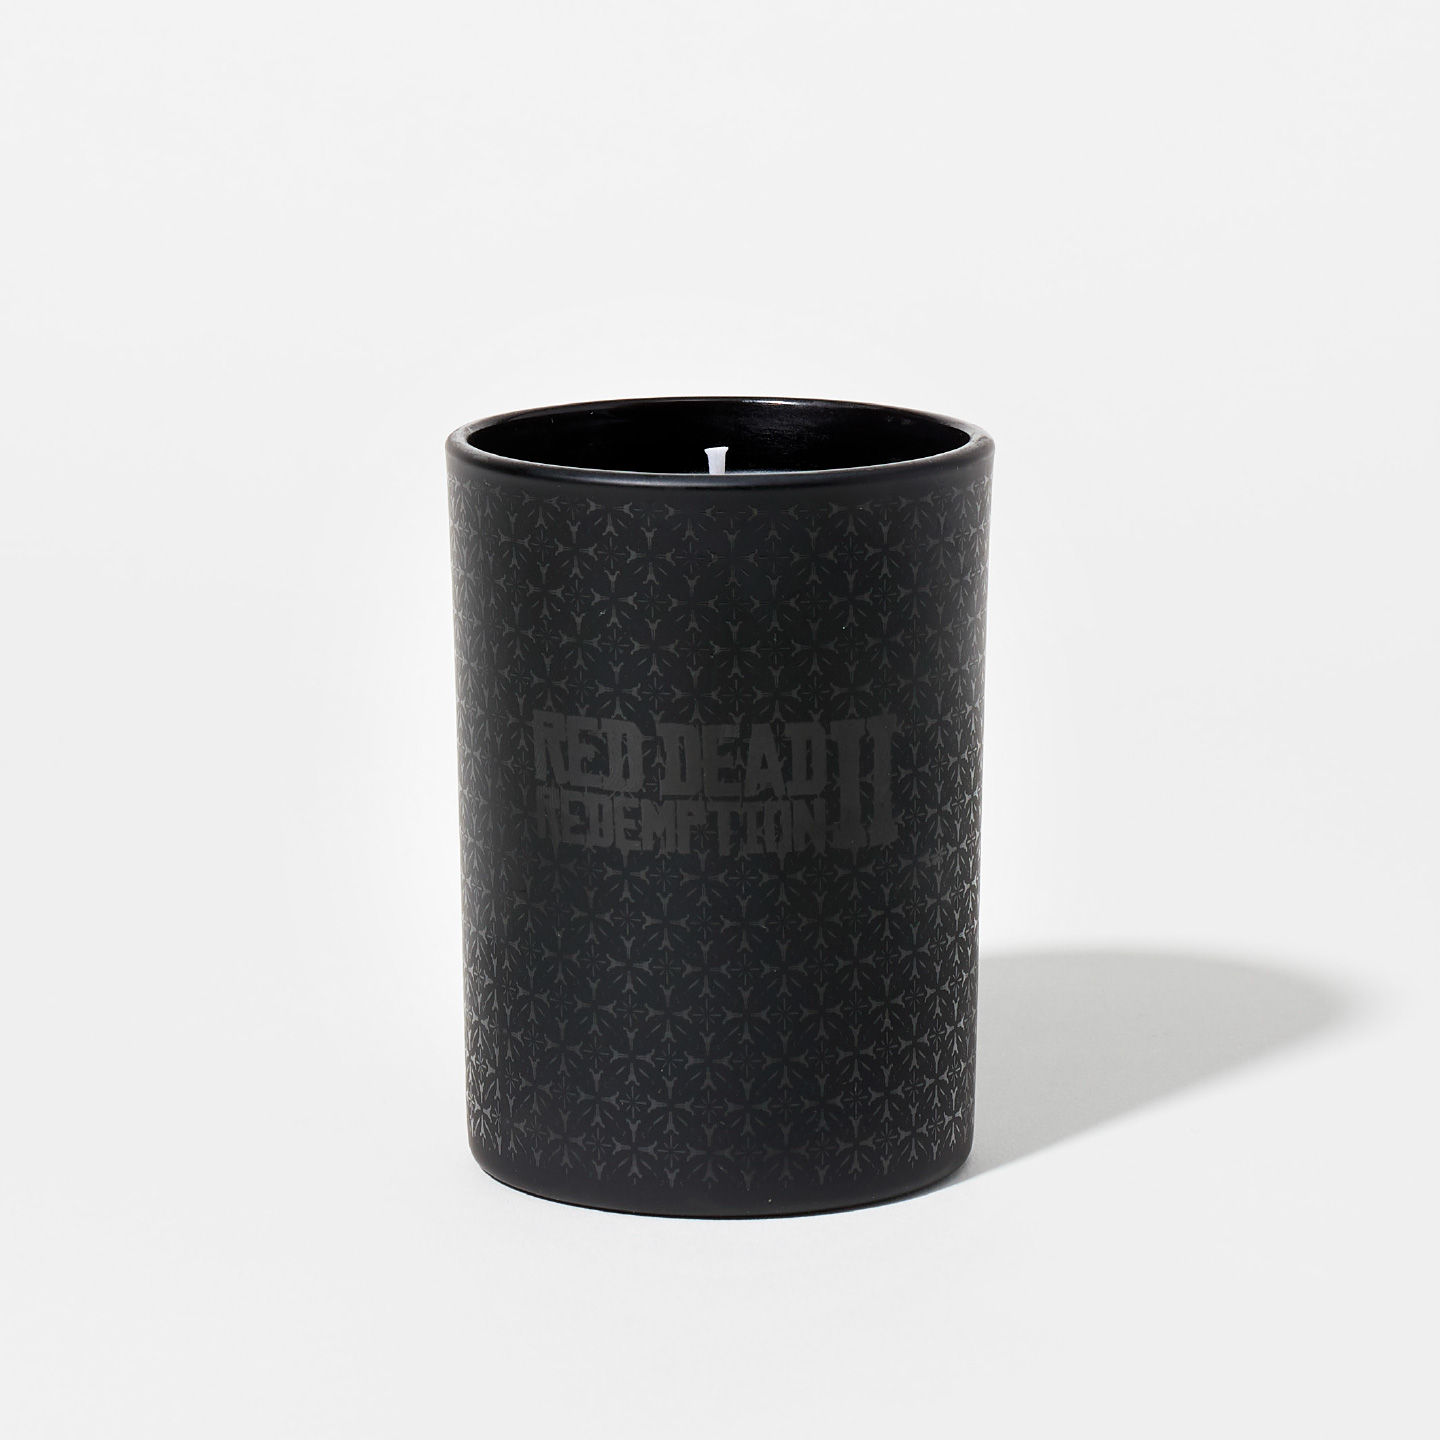 Red Dead Redemption 2 Glass Candle by Joya